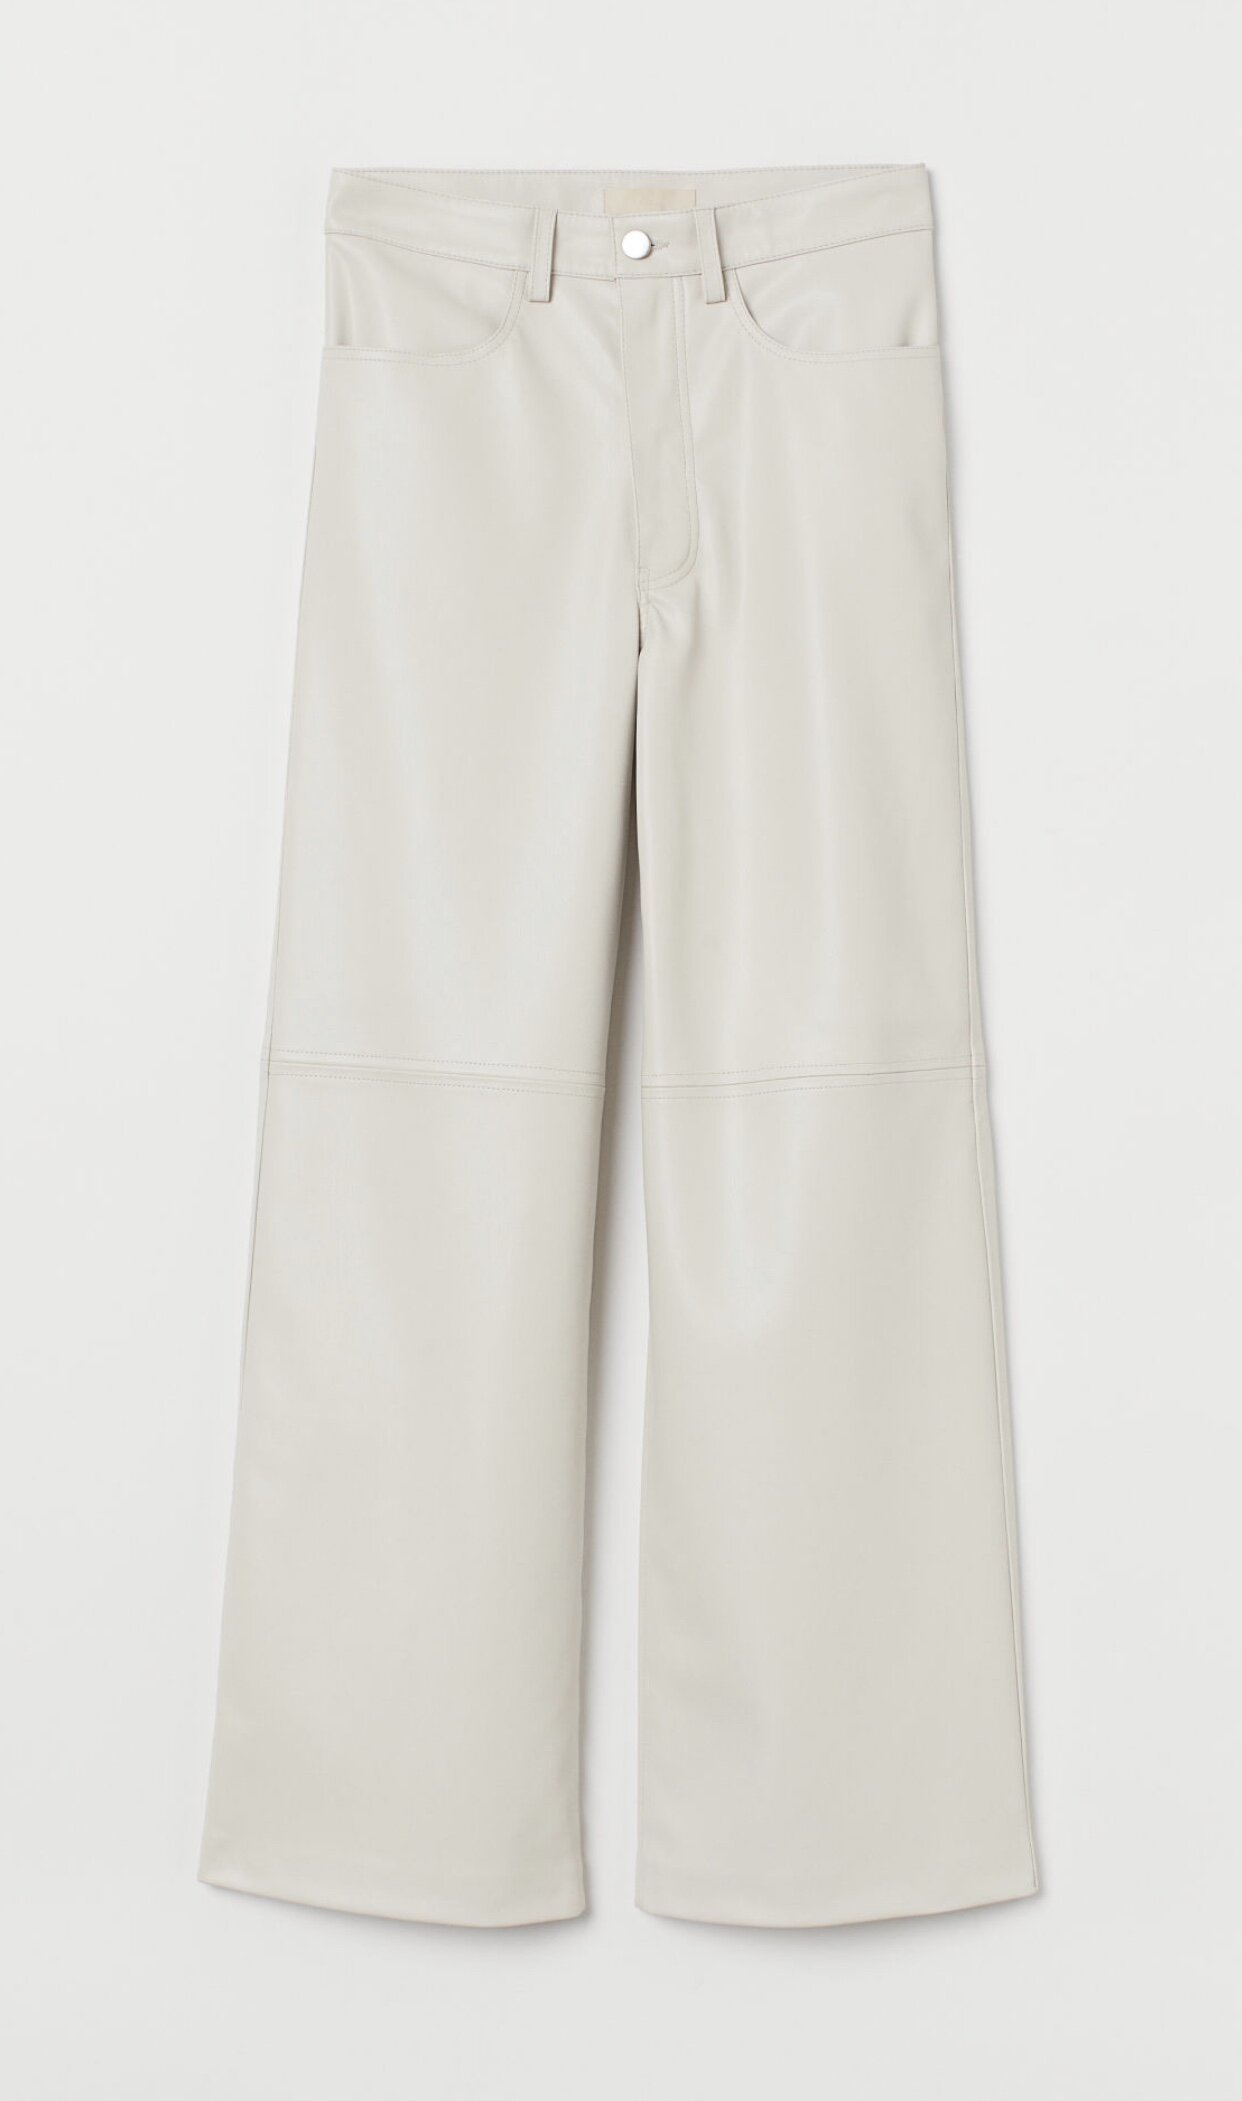 CREAM IMITATION LEATHER TROUSERS